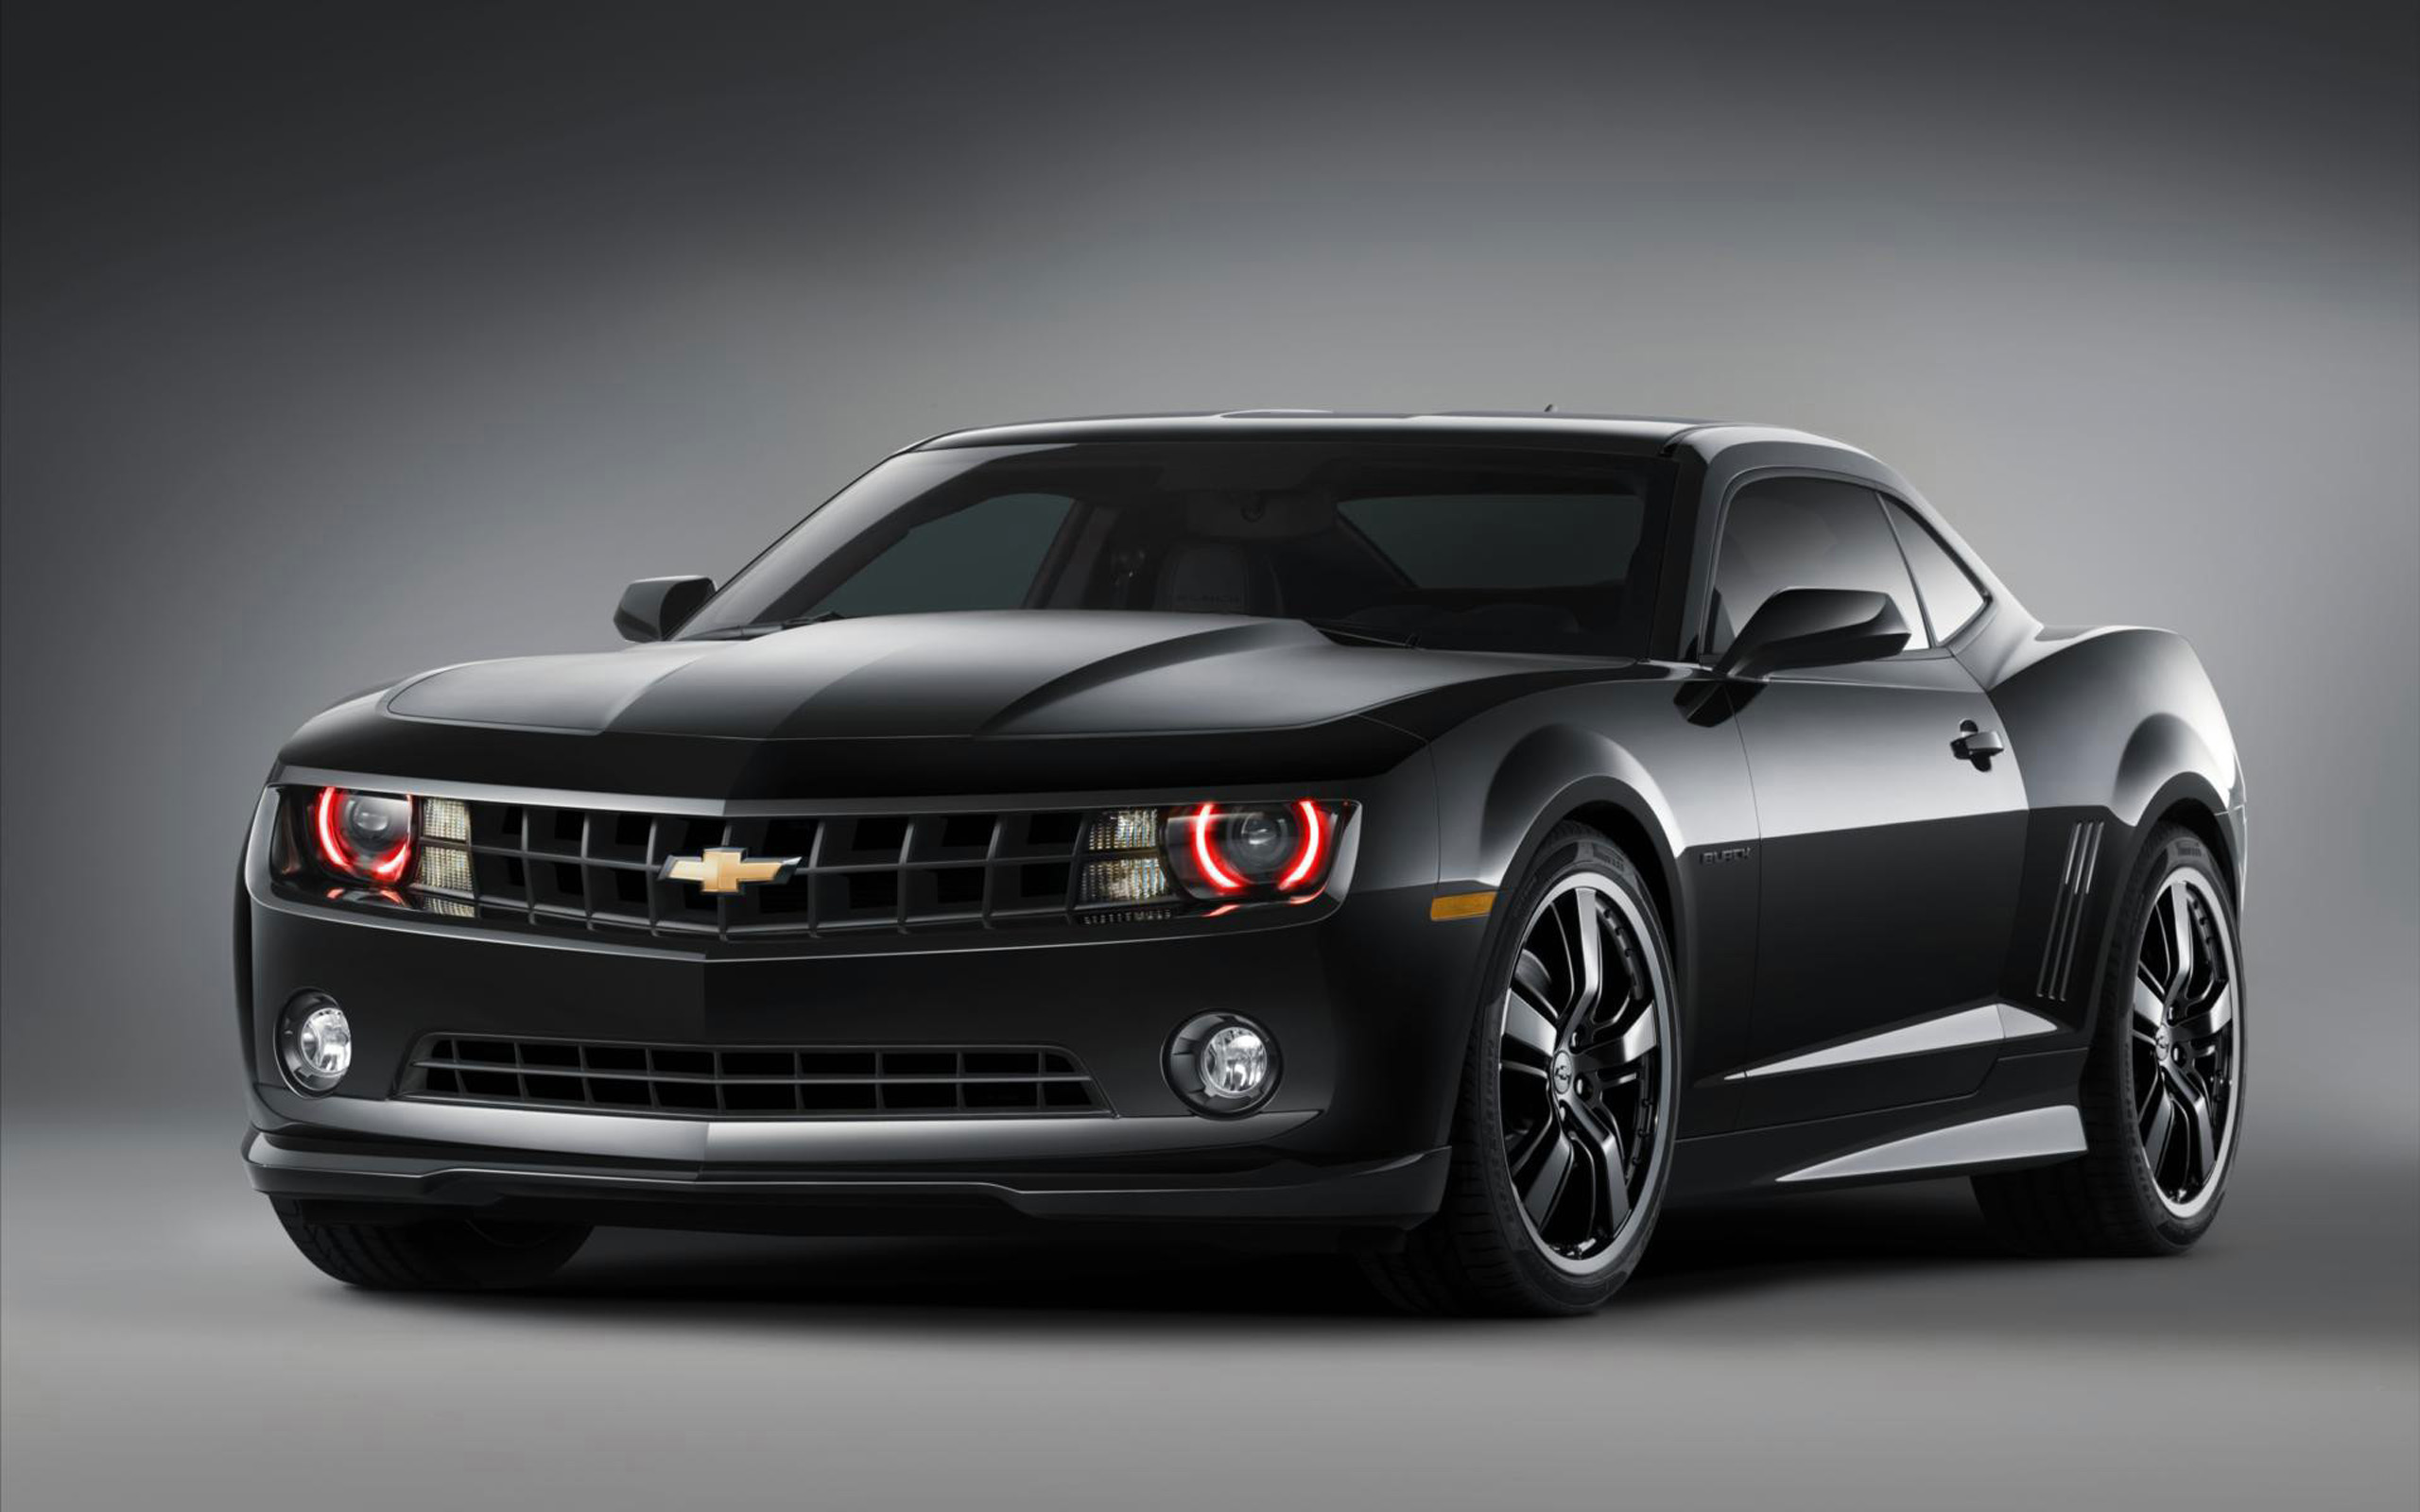 Black Chevrolet Camaro ZL1 wallpaper Wallpaper 2560x1600